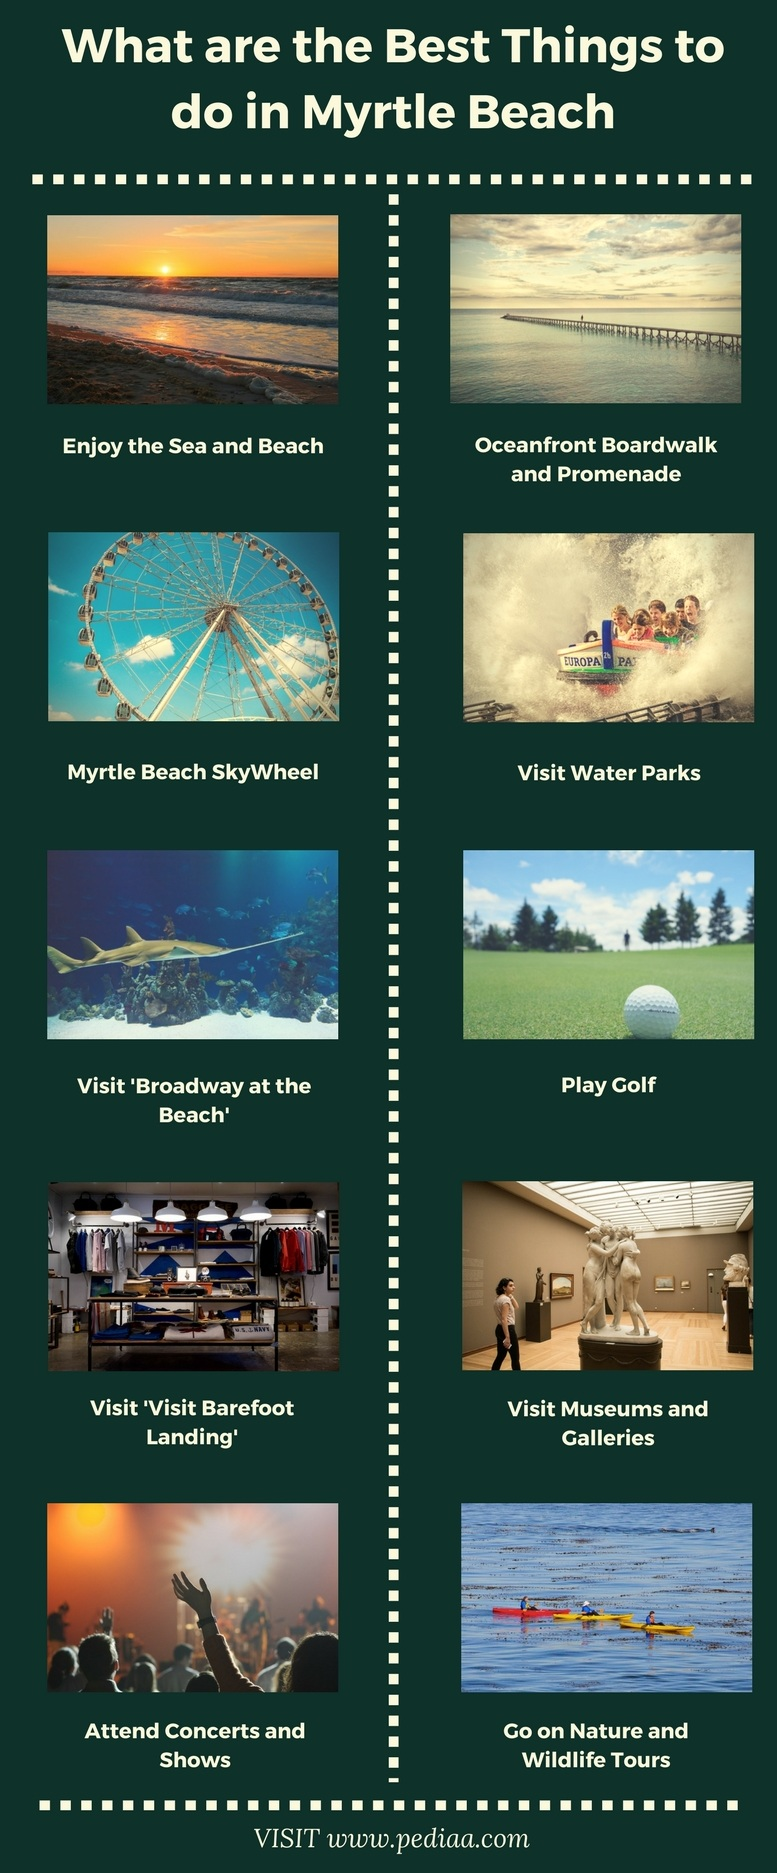 What are the Best Things to do in Myrtle Beach - Infographic